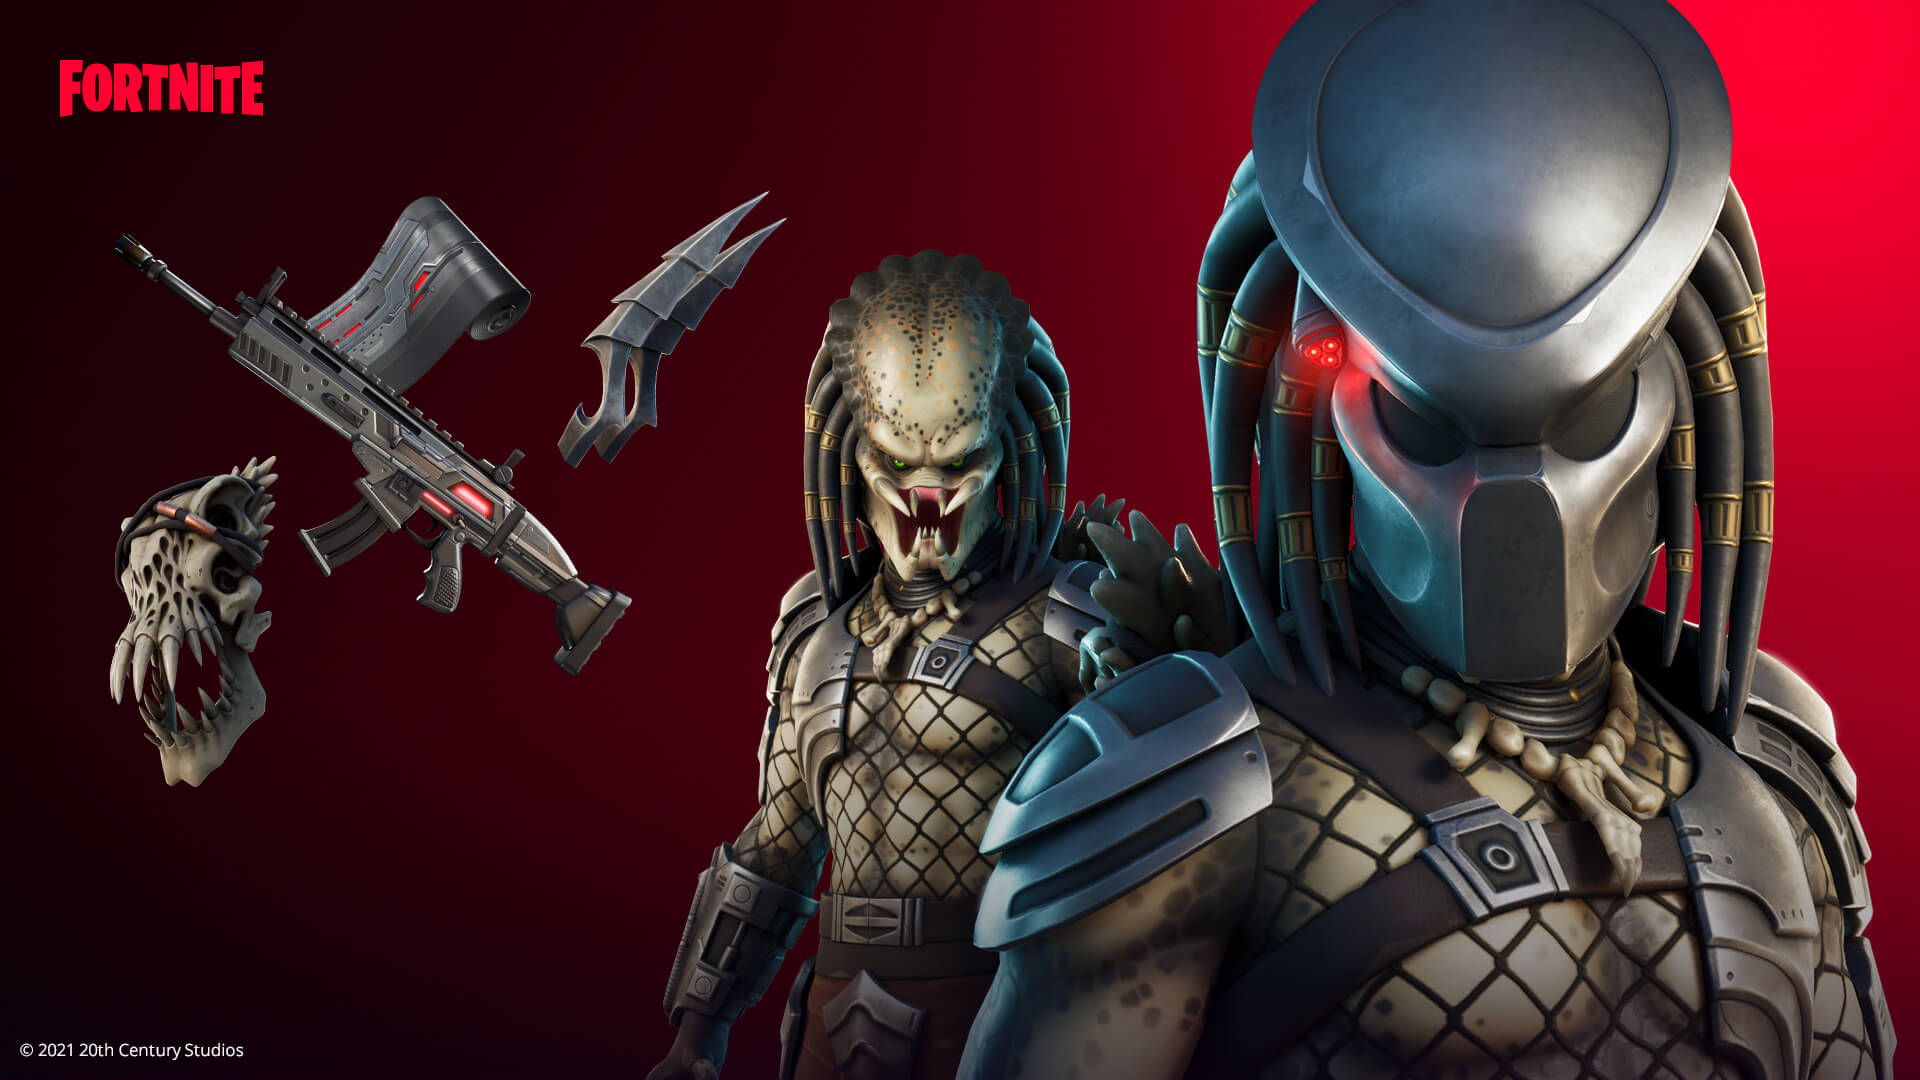 How to Defeat Predator in Fortnite